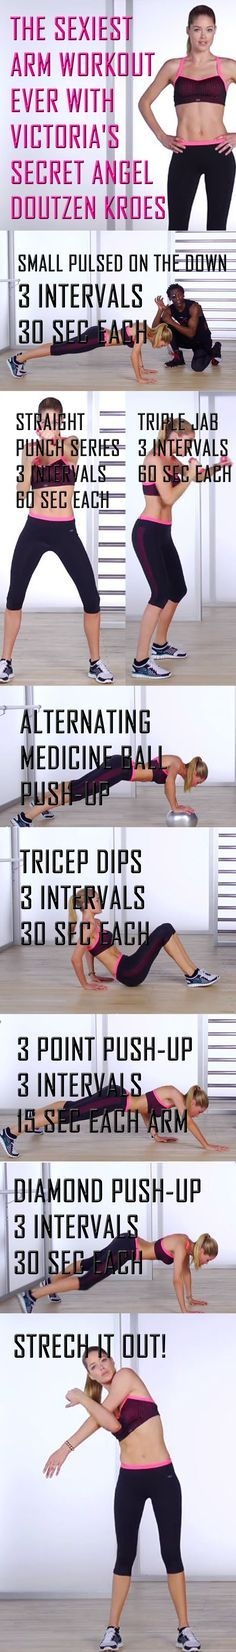 Get sexy lean arms with this amazing workout. Do it now!